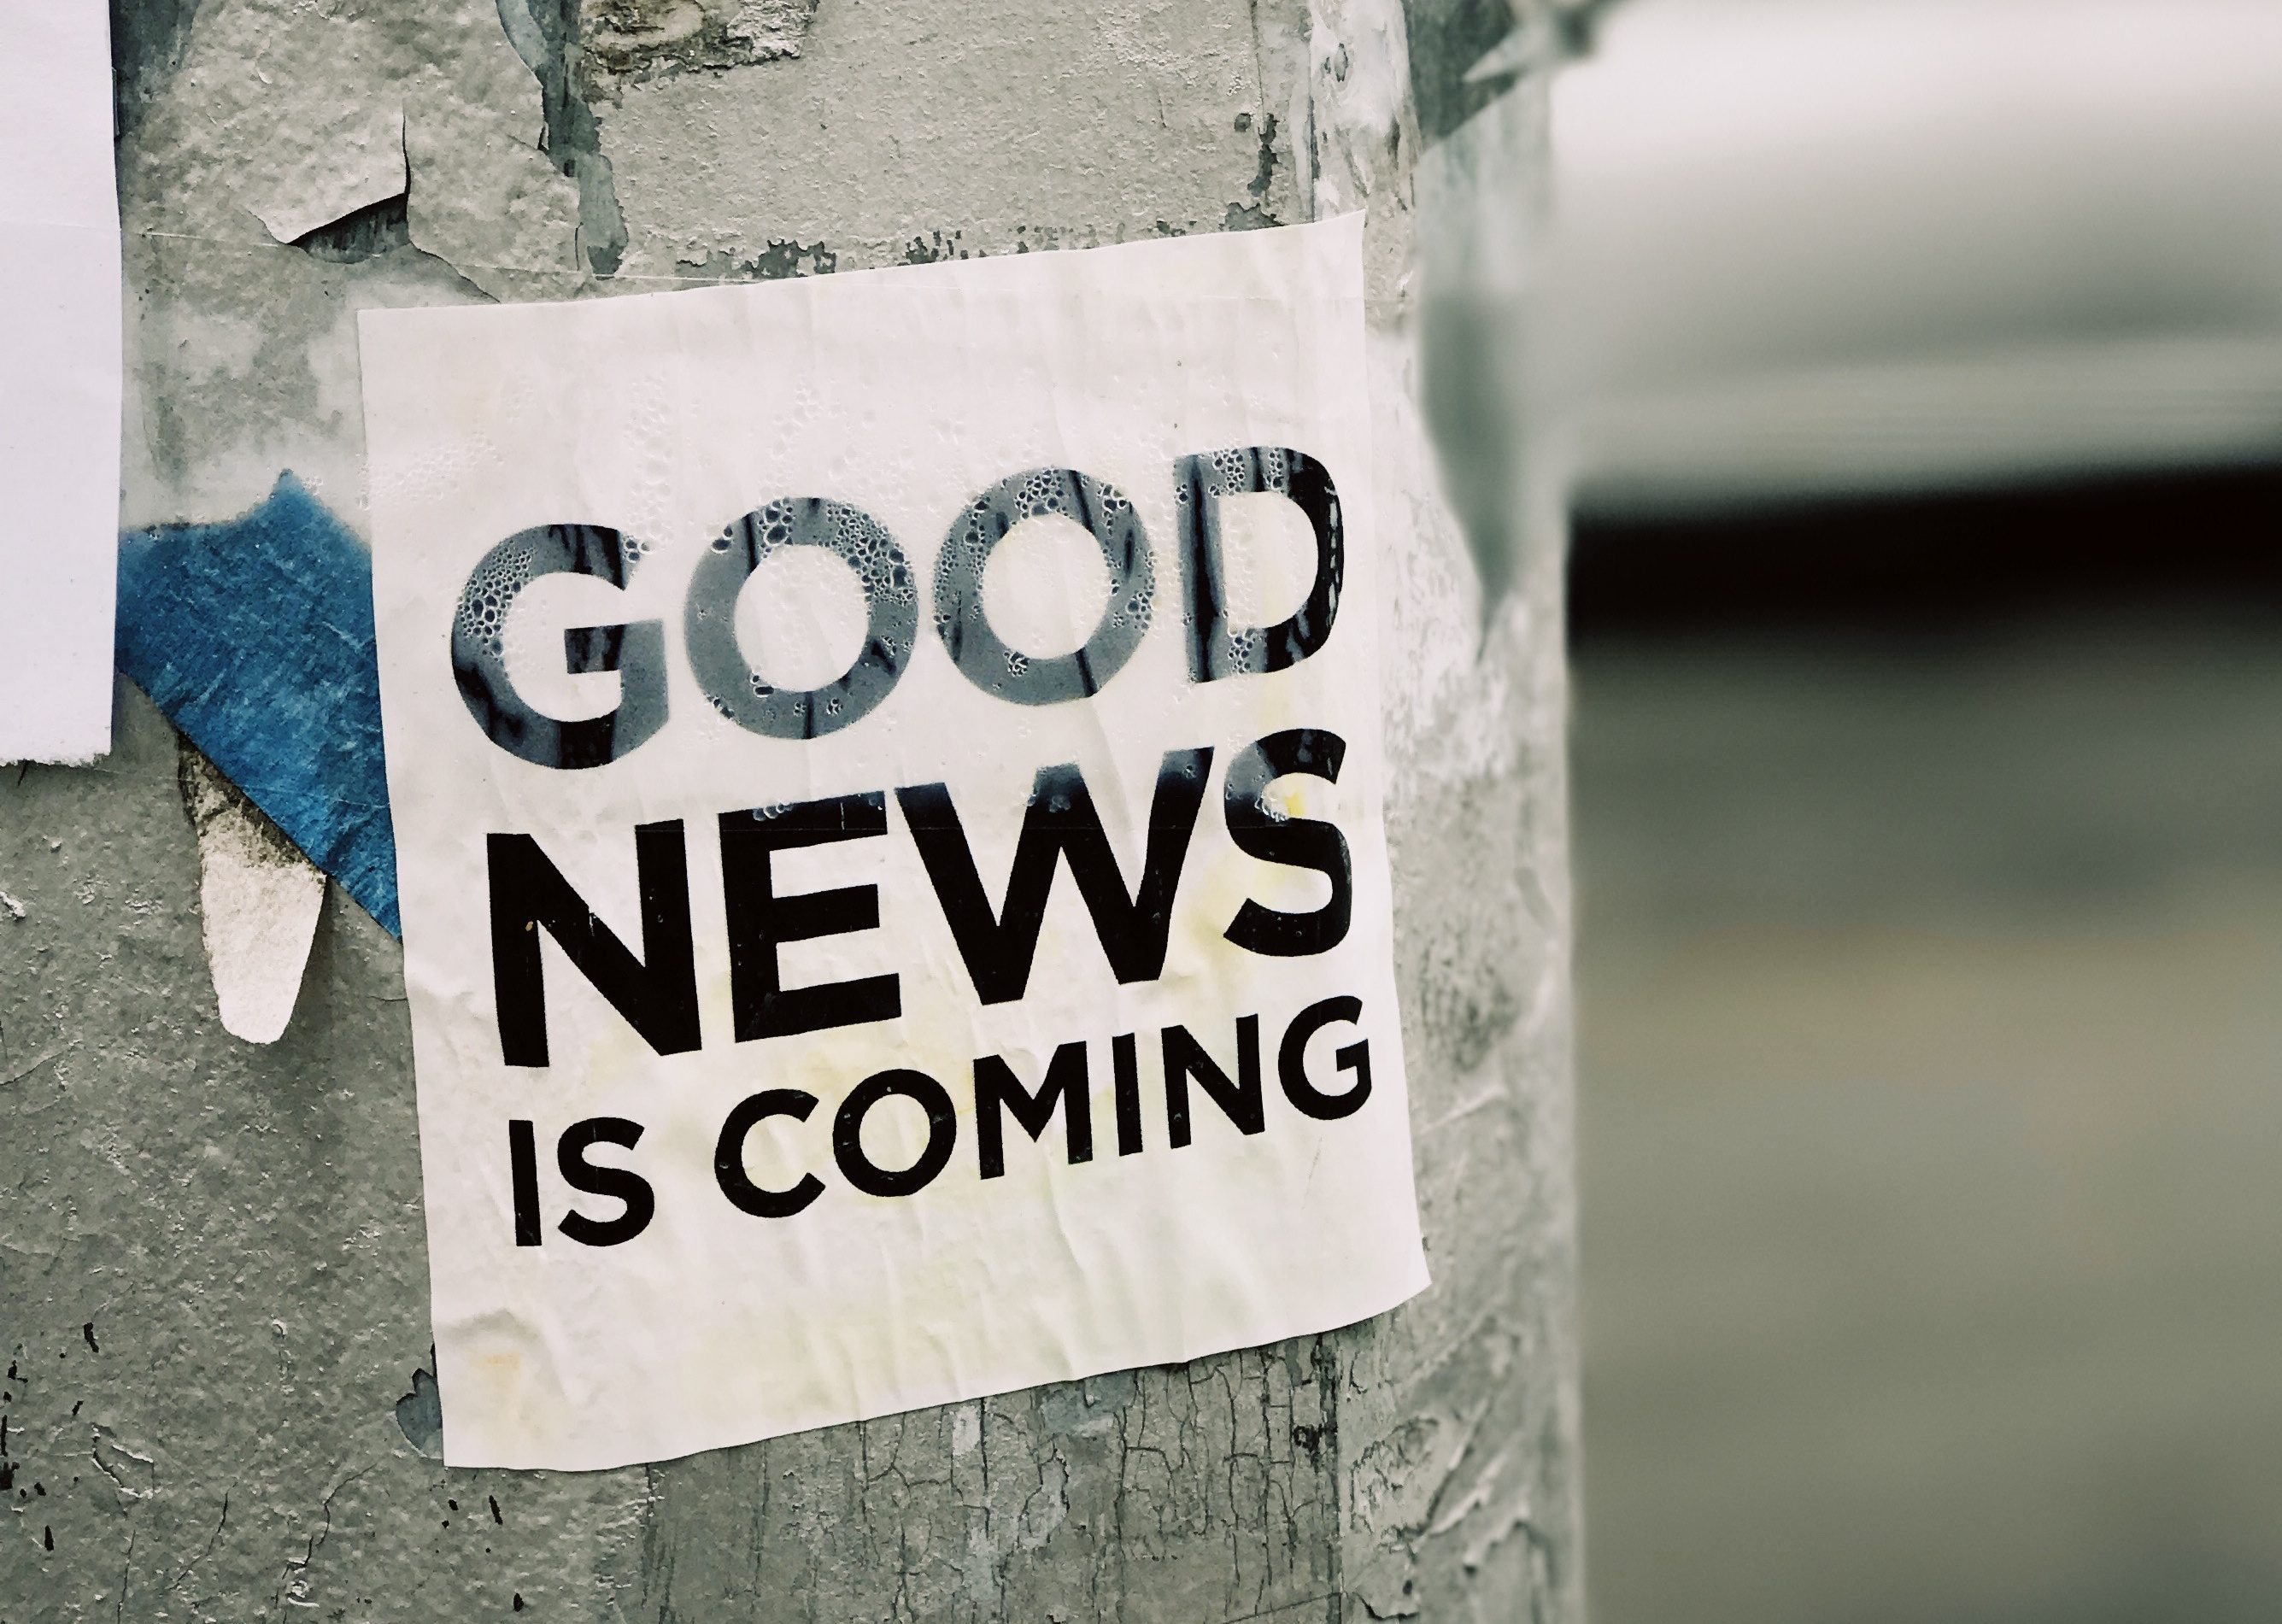 Good-News-Coming-e1547333564968.jpg?fit=